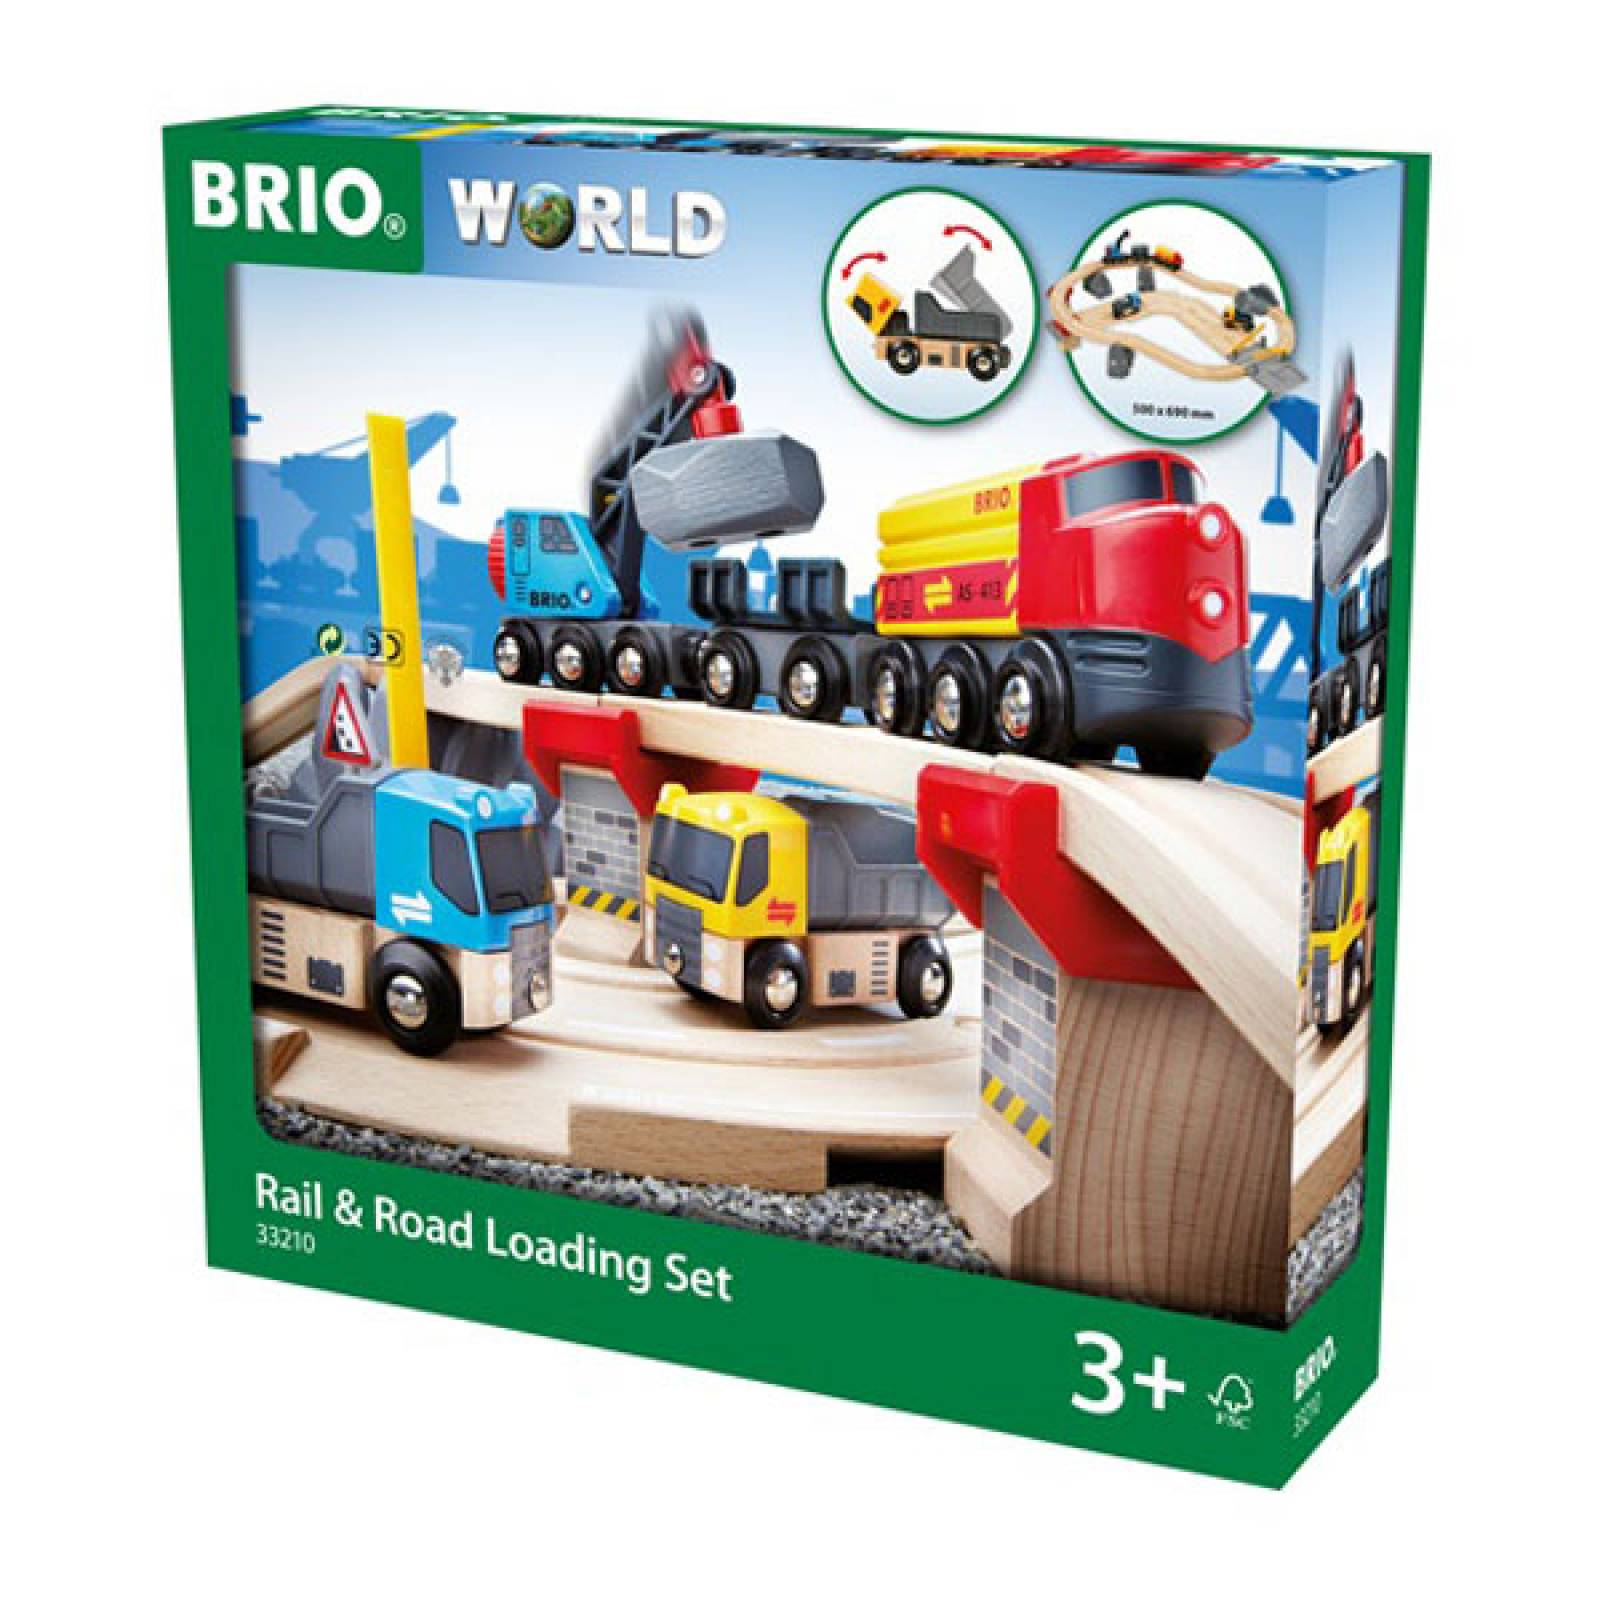 Rail & Road Loading Set BRIO® Wooden Railway Age 3+ thumbnails